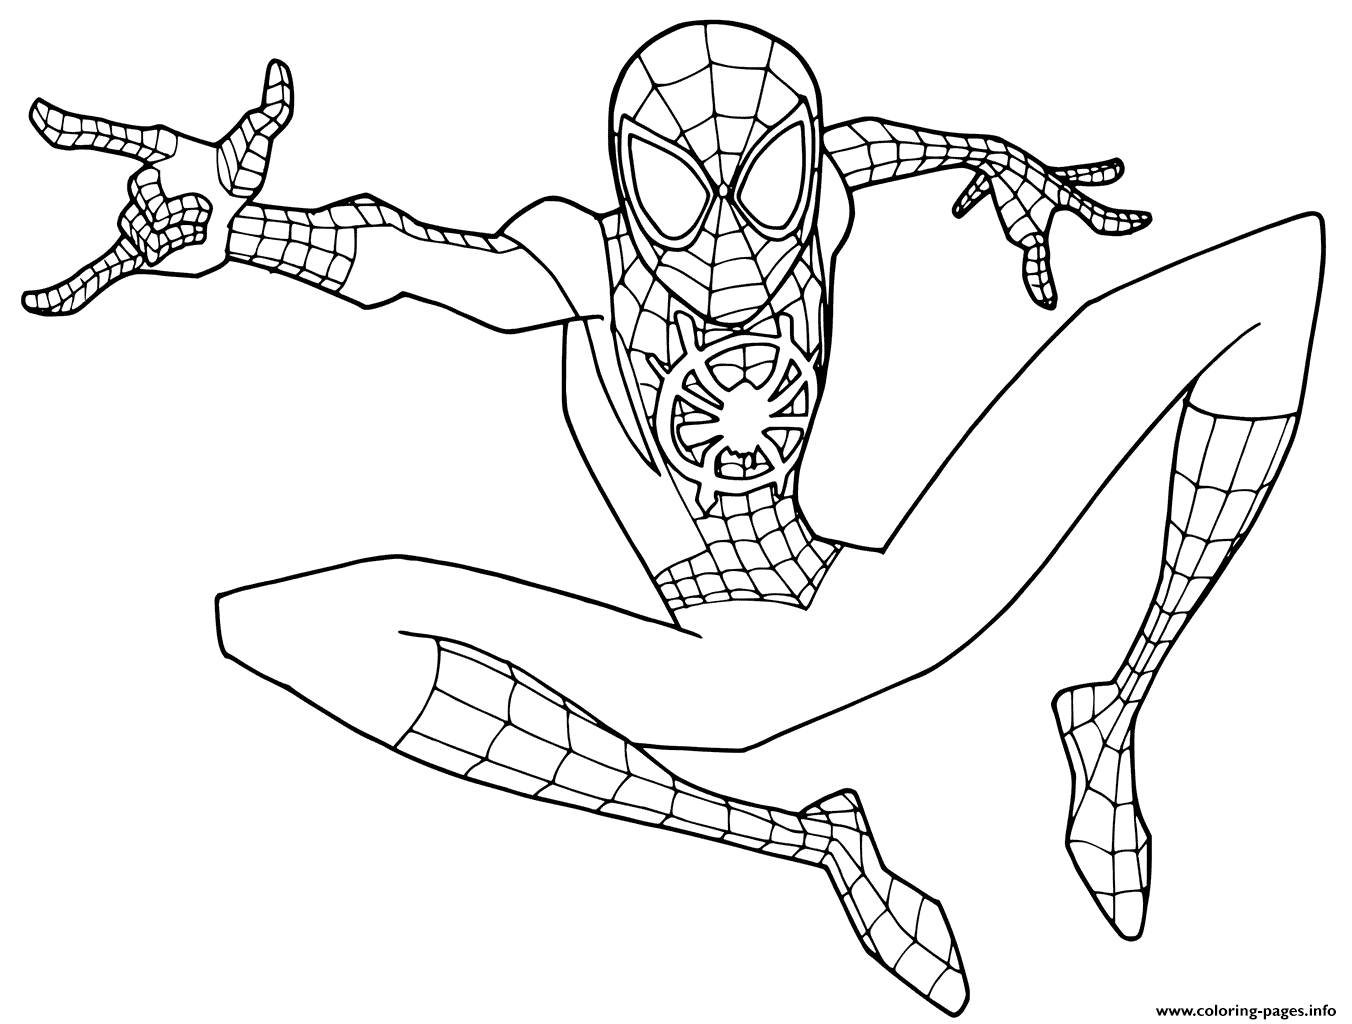 Print Young Spider Man Coloring Pages Spider Coloring Page Spiderman Coloring Superhero Coloring Pages